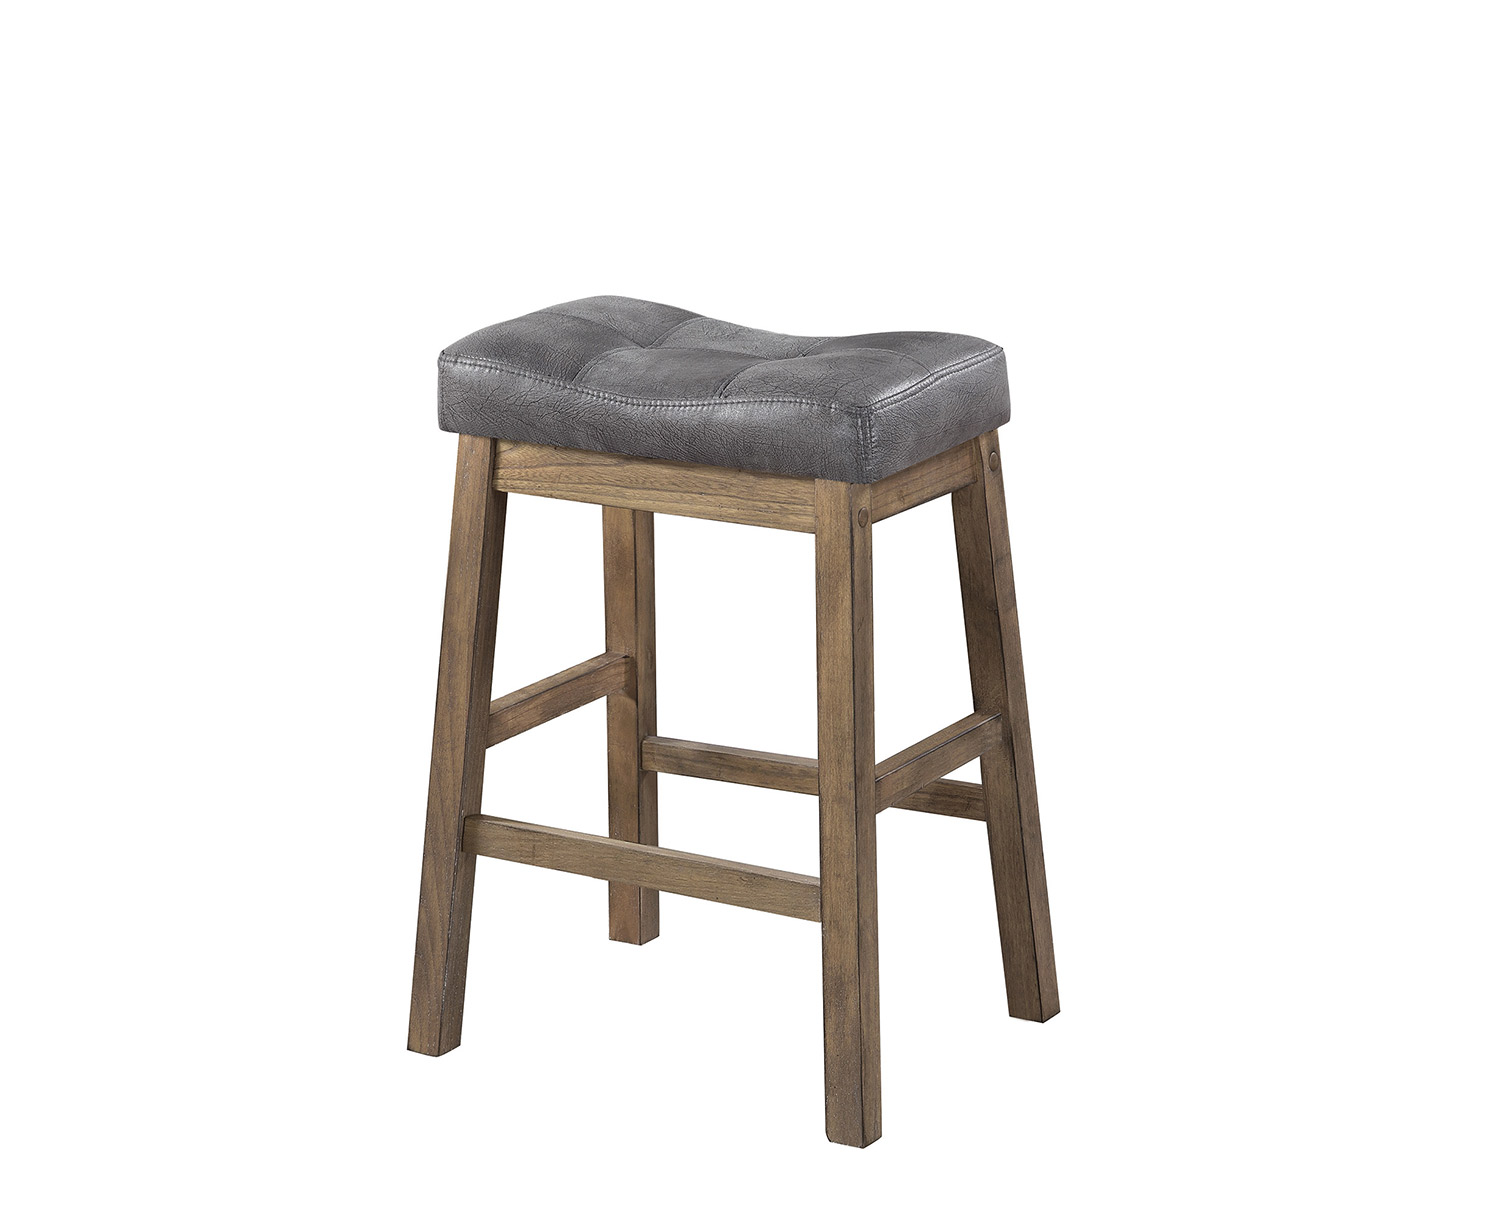 Coaster 121519 Counter Height Stool - Brown/Driftwood